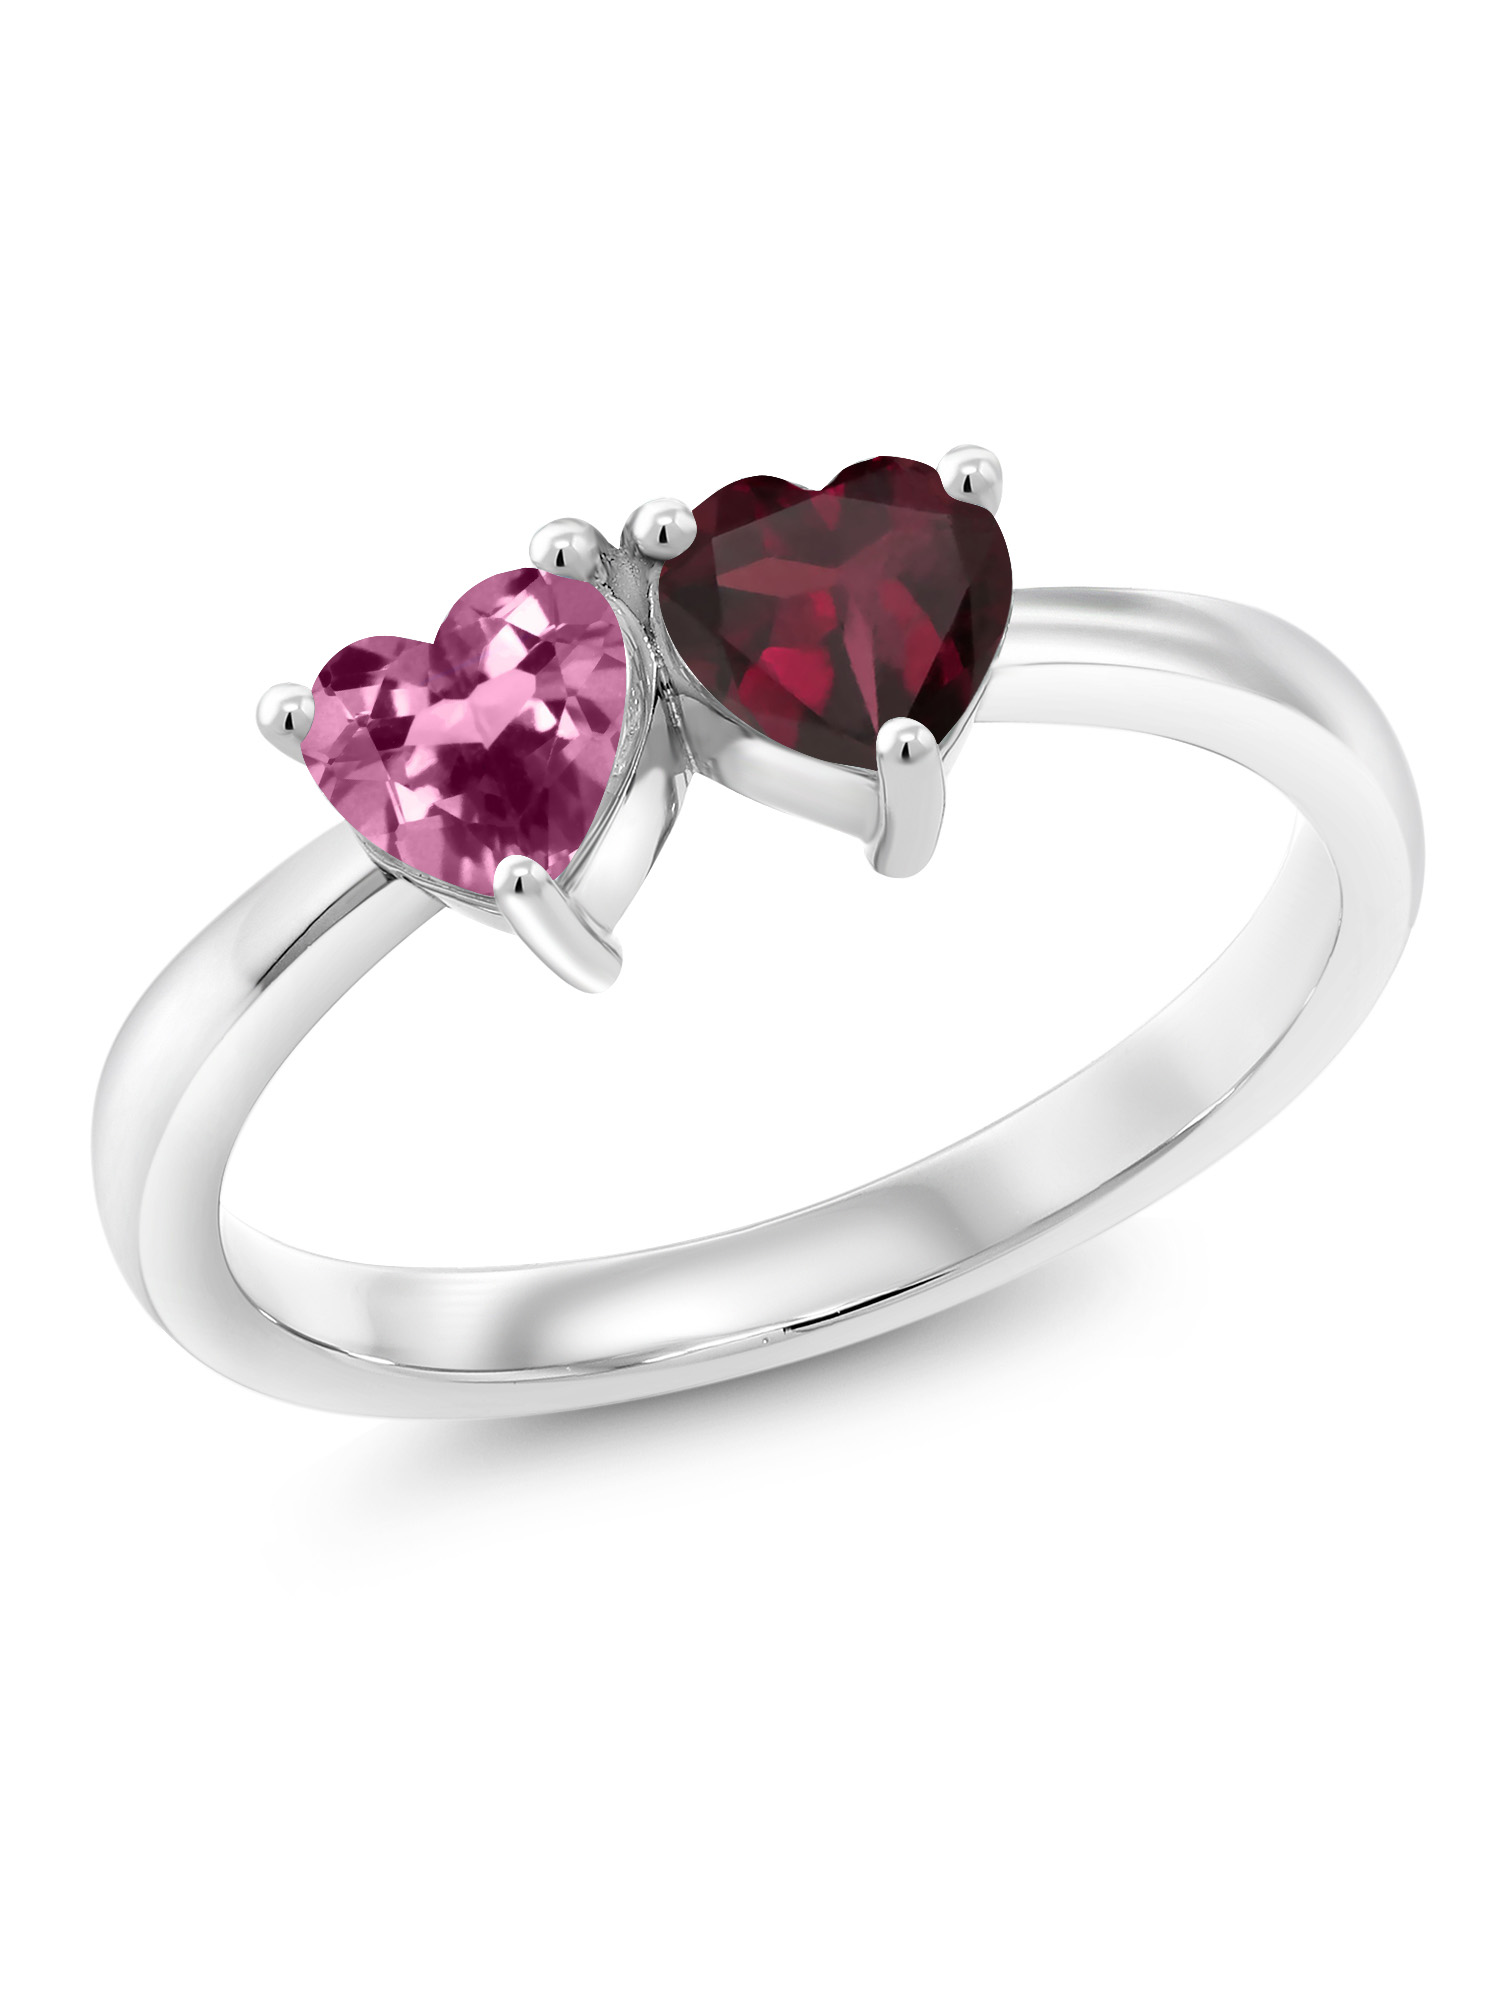 0.99 Ct Heart Shape Pink Tourmaline Red Rhodolite Garnet 925 Silver Ring by